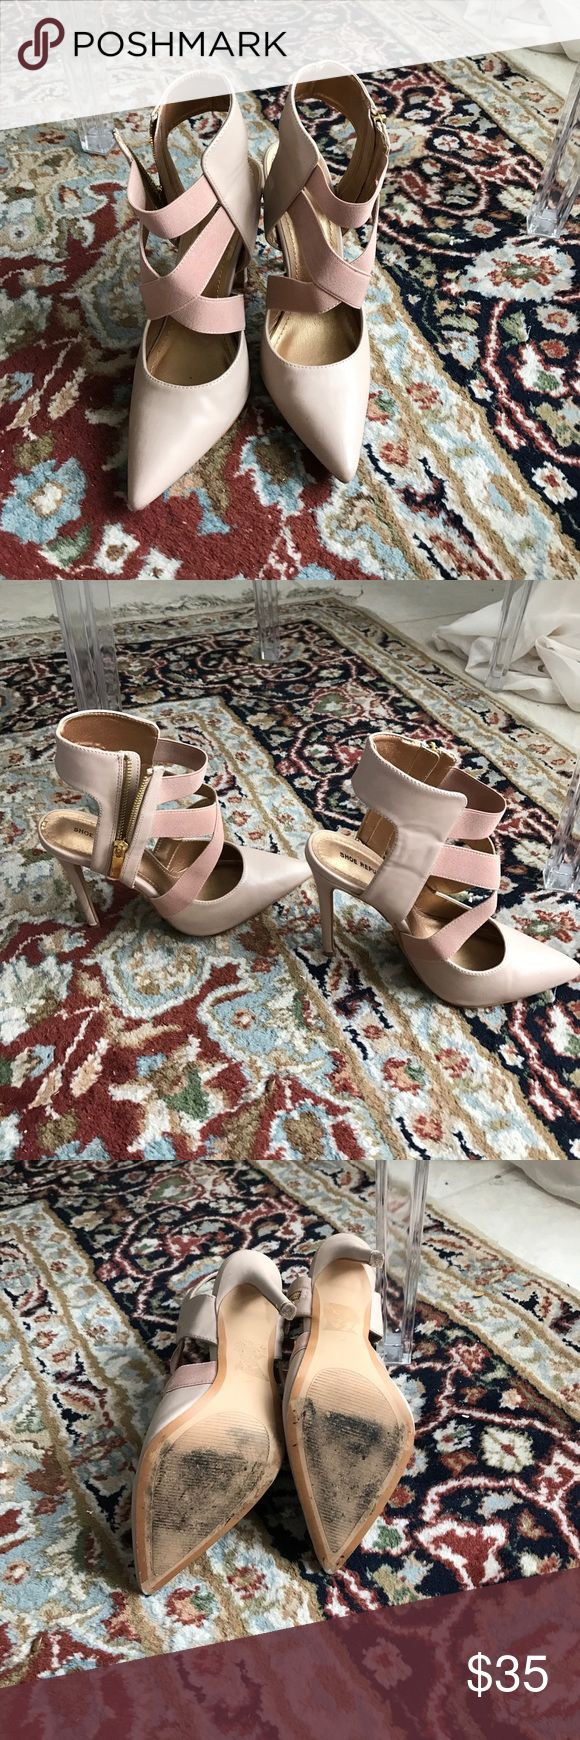 Sexy ankle heels Blush color with gold detailing Sexy heels are head turning shoes. Super comfortable wear with jeans 👖 a skirt, or dress 👗 Shoes Heels